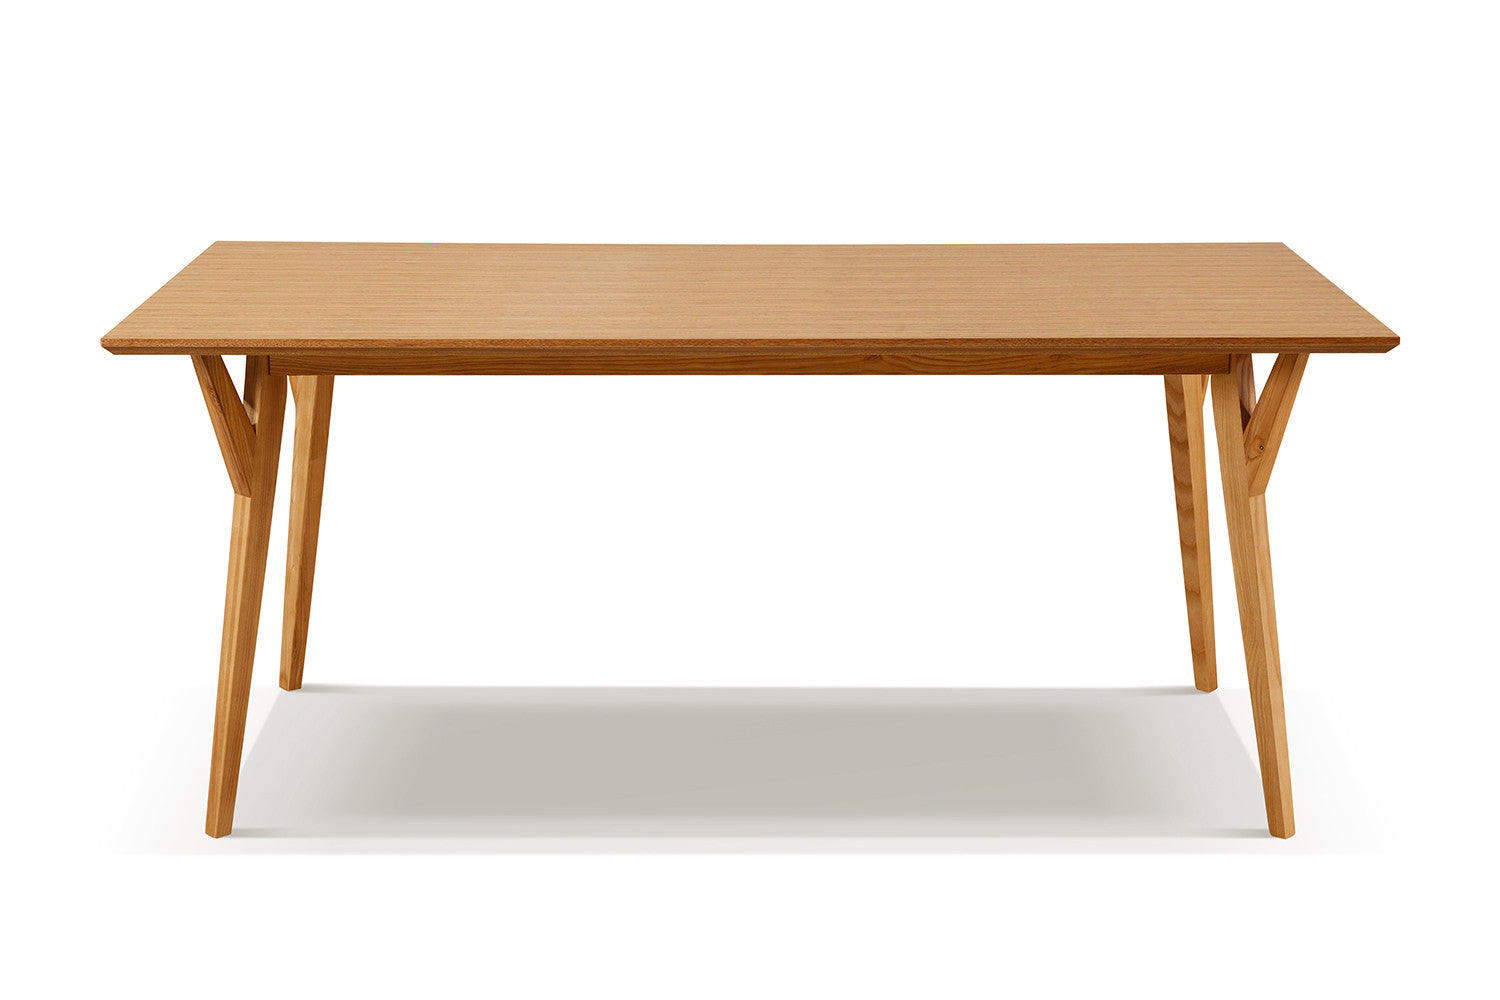 Table salle a manger scandinave for Table salle a manger 80x80